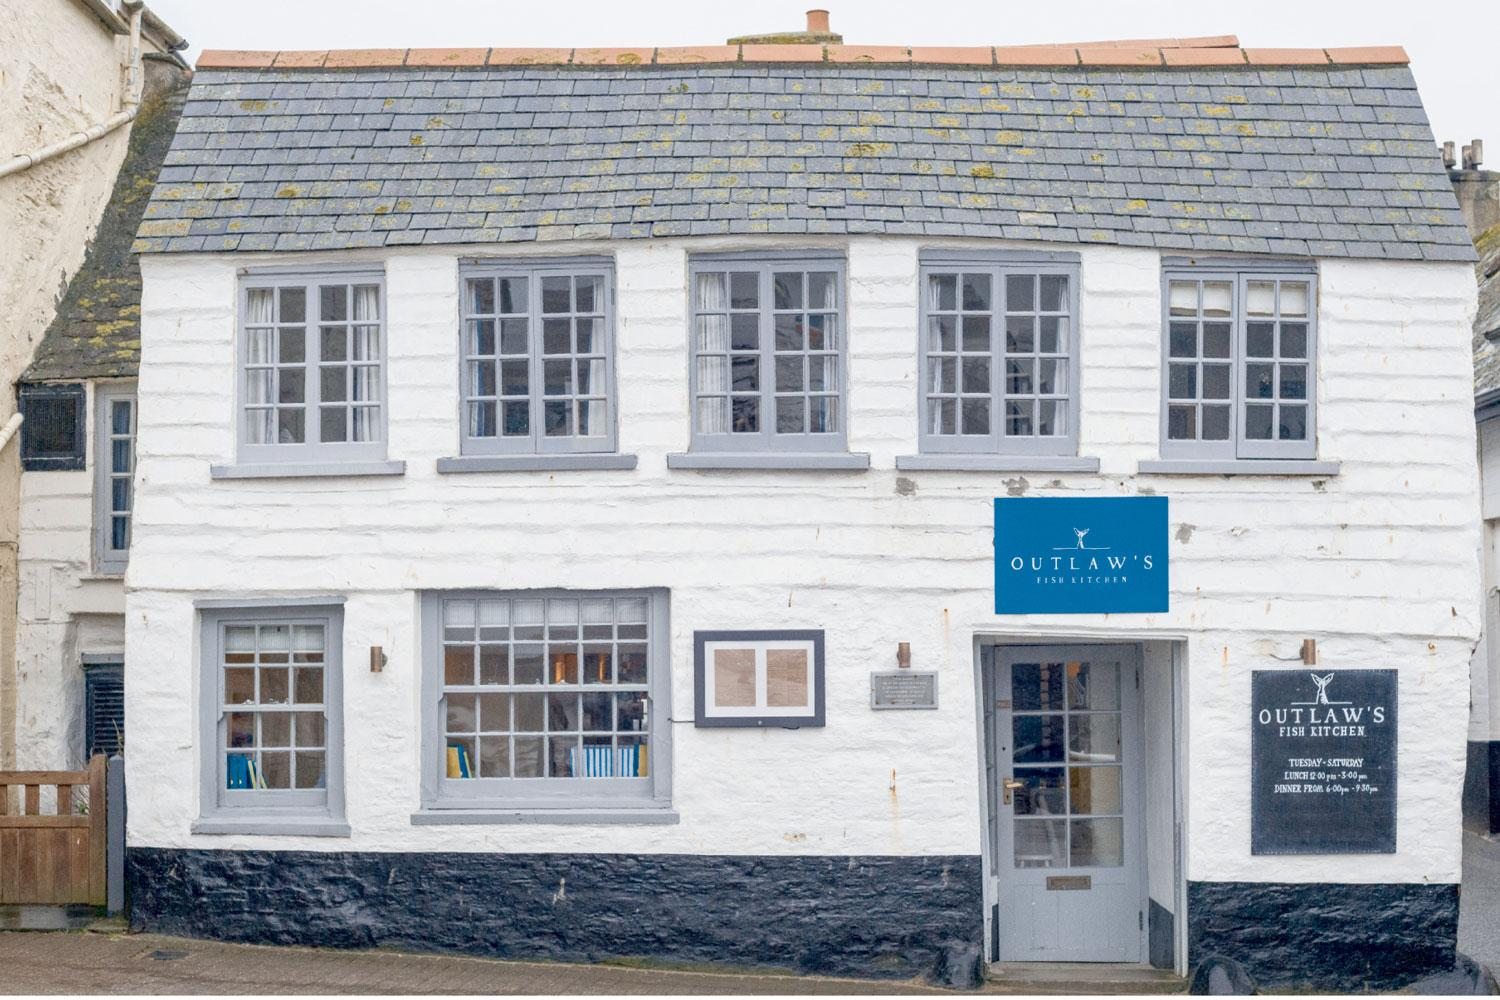 Outlaw's Fish Kitchen - Cornwall